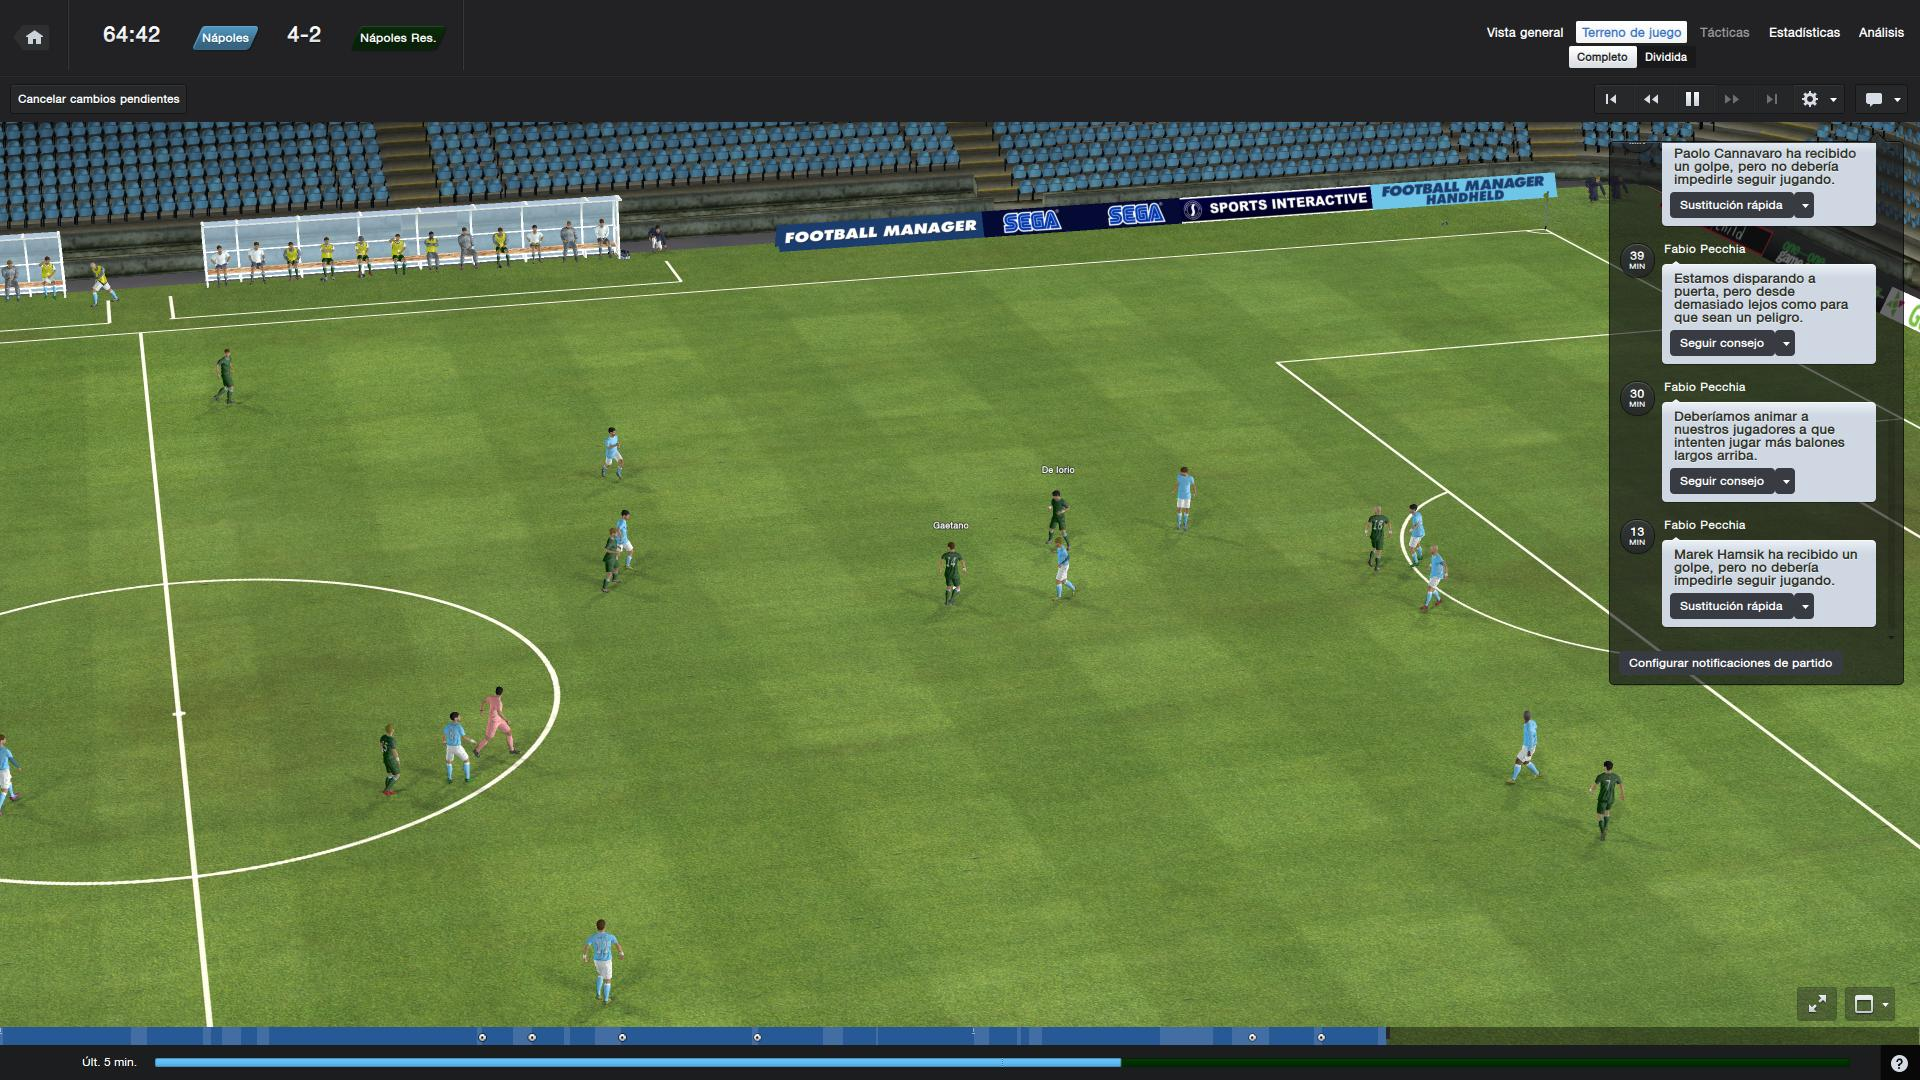 Analisis De Football Manager 2014 Hobbyconsolas Juegos